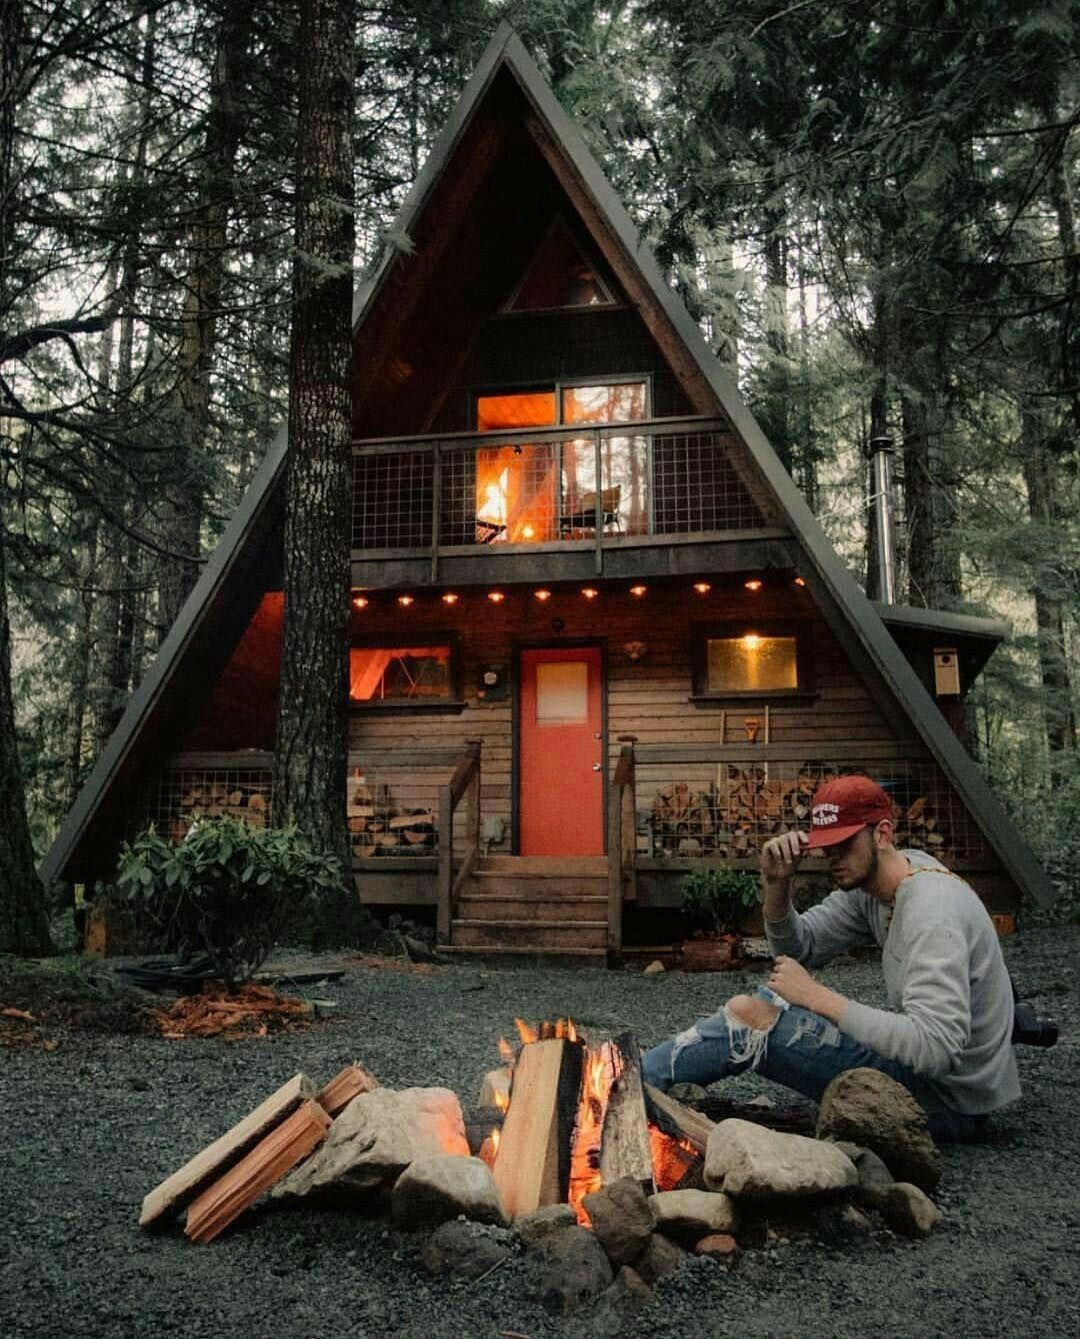 A Frame Cabin In The Woods Fire Pit Cottage Country Cabins A Frame House Small Log Cabin Log Cabin Homes